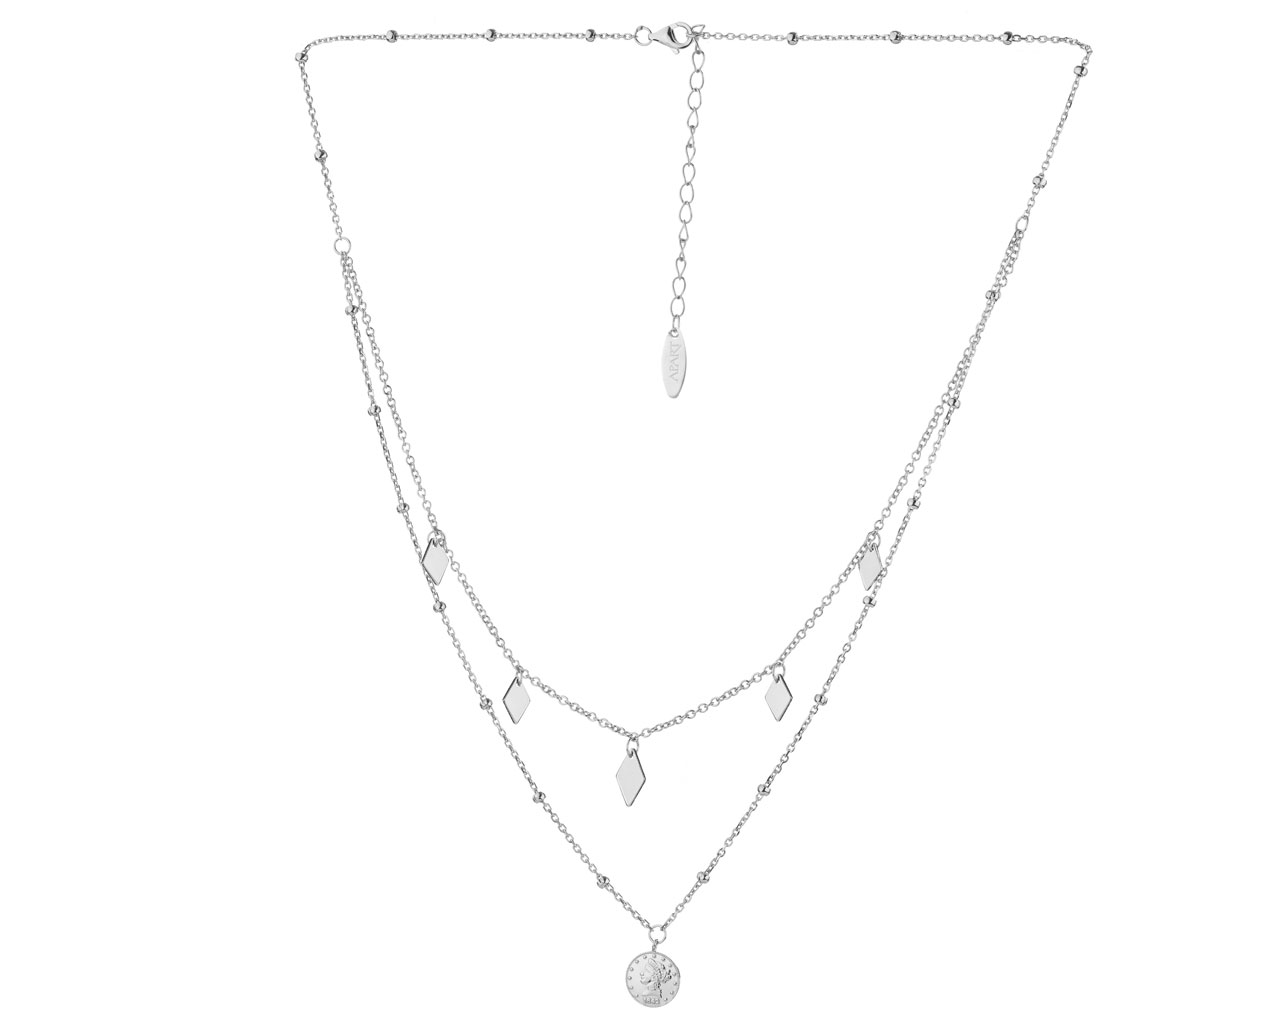 Sterling Silver Necklace with Cubic Zirconia - Coin